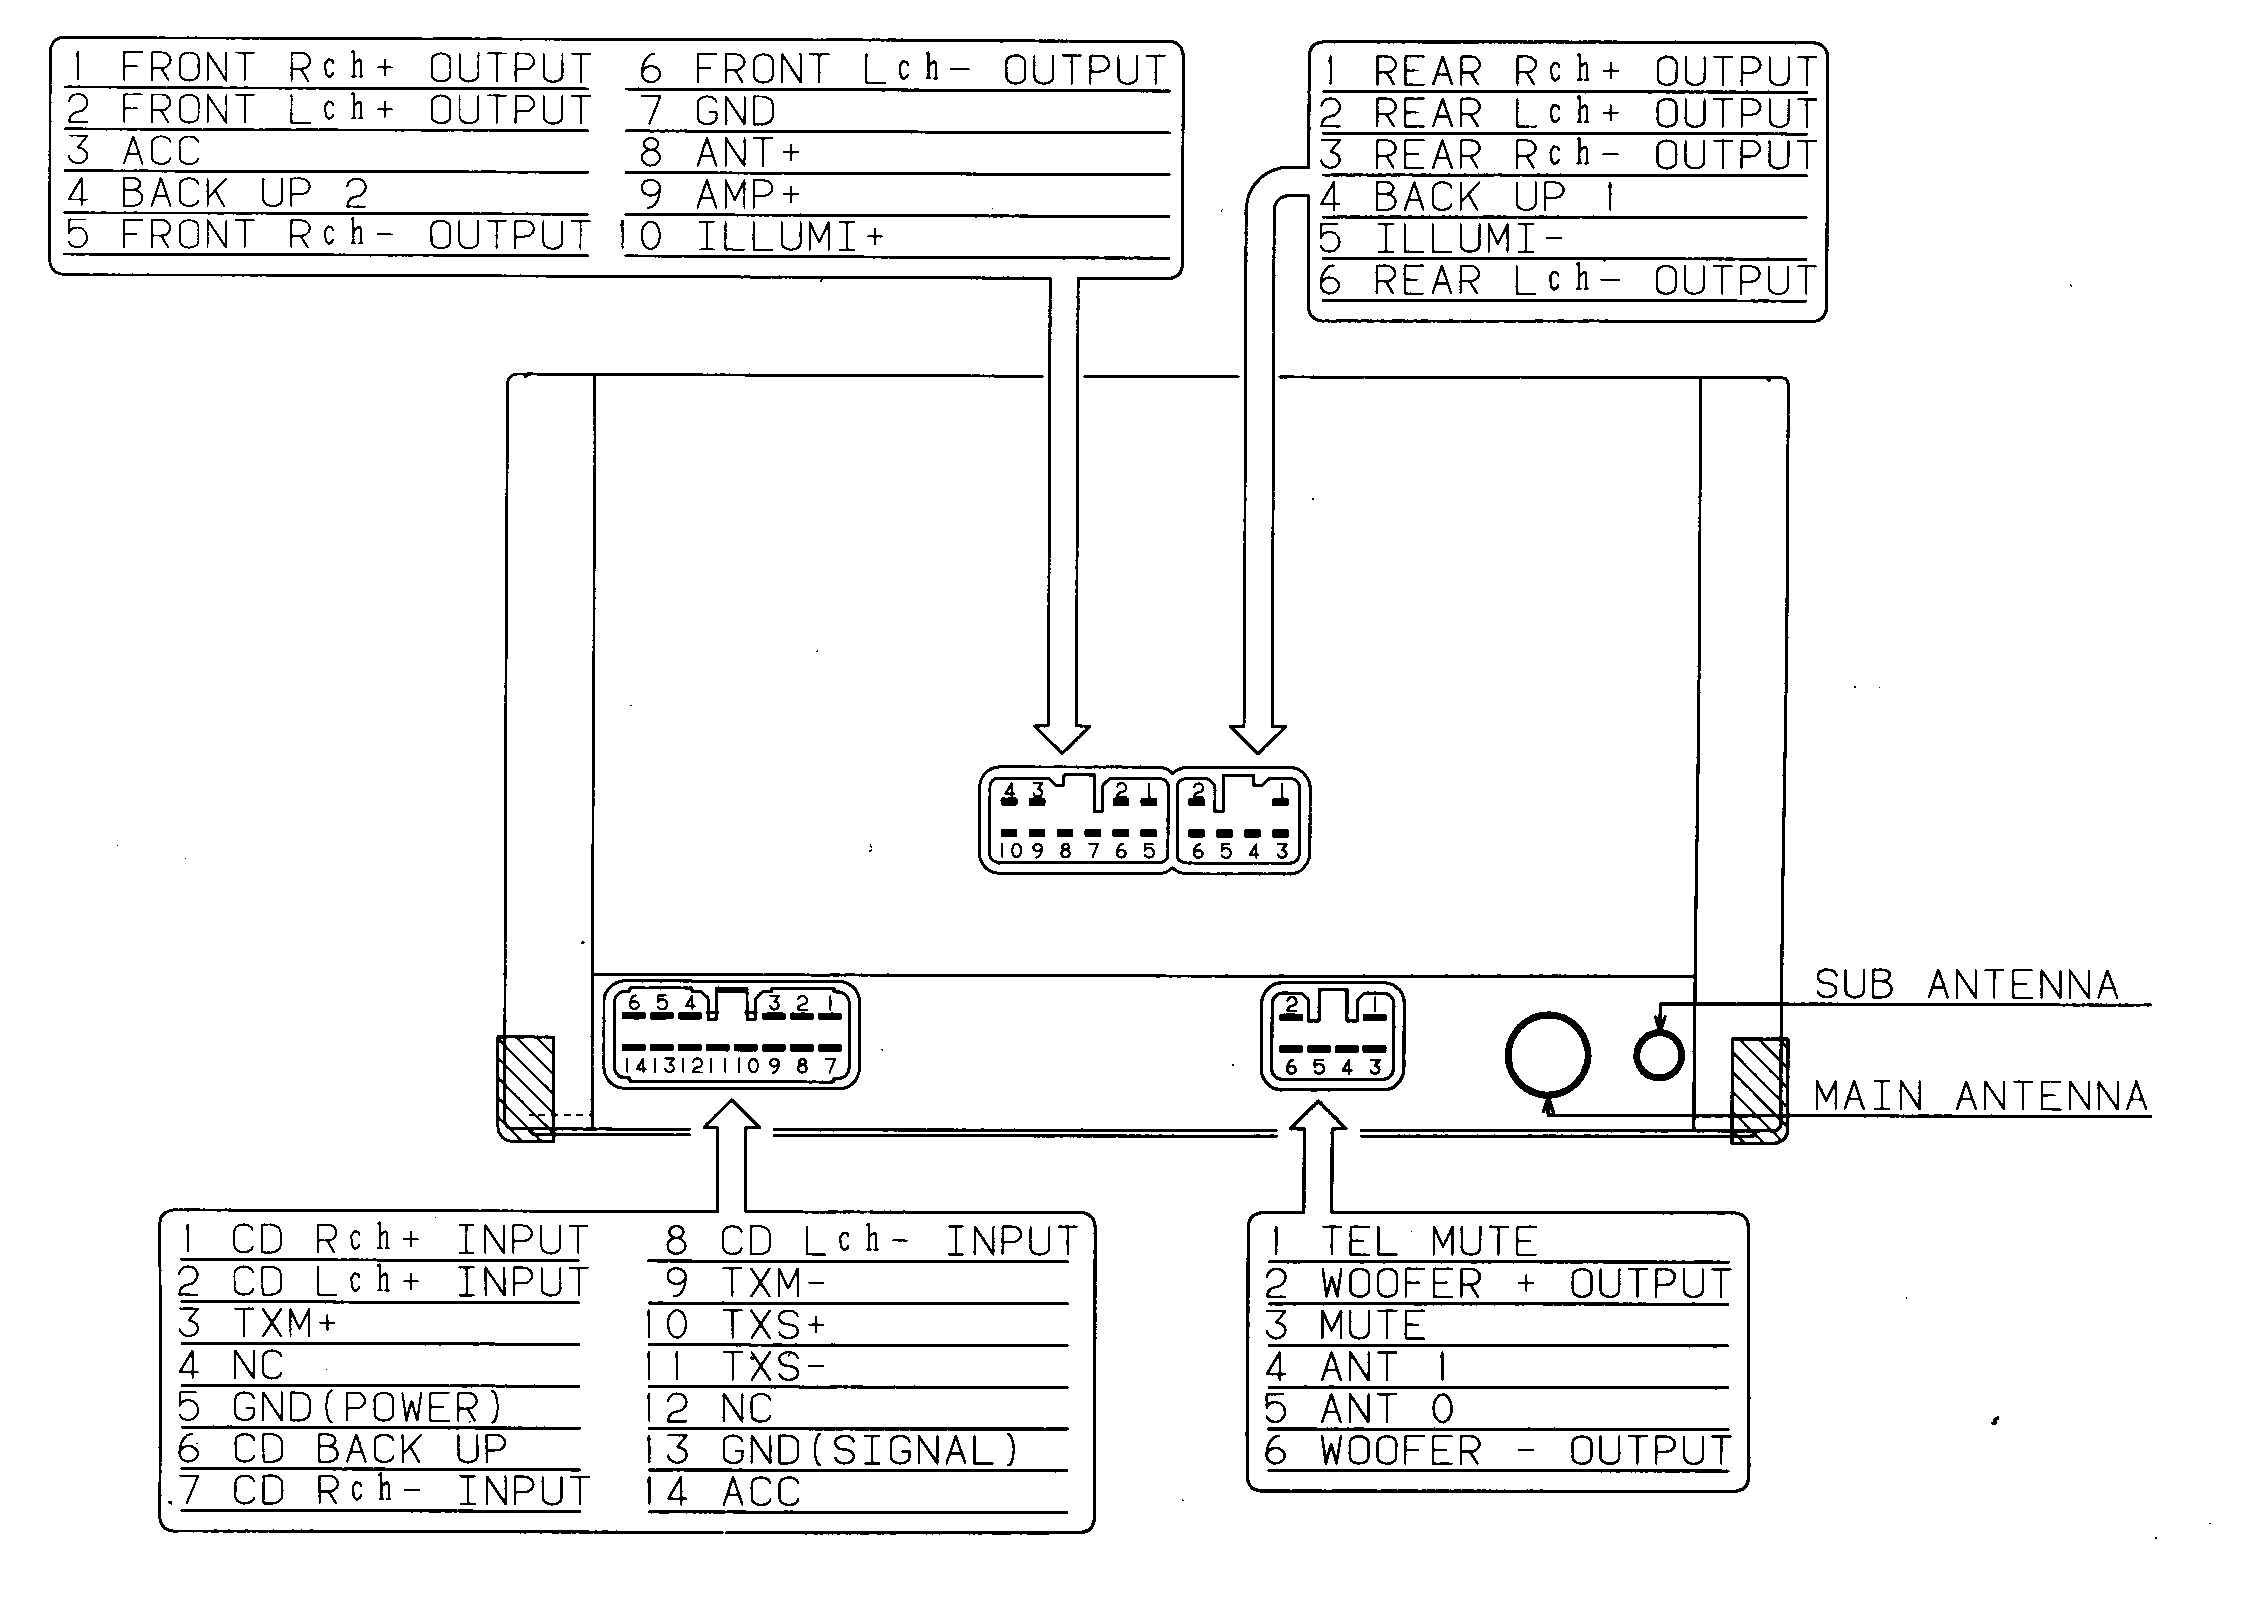 Lexus car stereo wiring diagram harness pinout connector wire lexus rx330 radio wiring diagram lexus rx330 parts diagram 2002 Lexus RX300 Interior at honlapkeszites.co